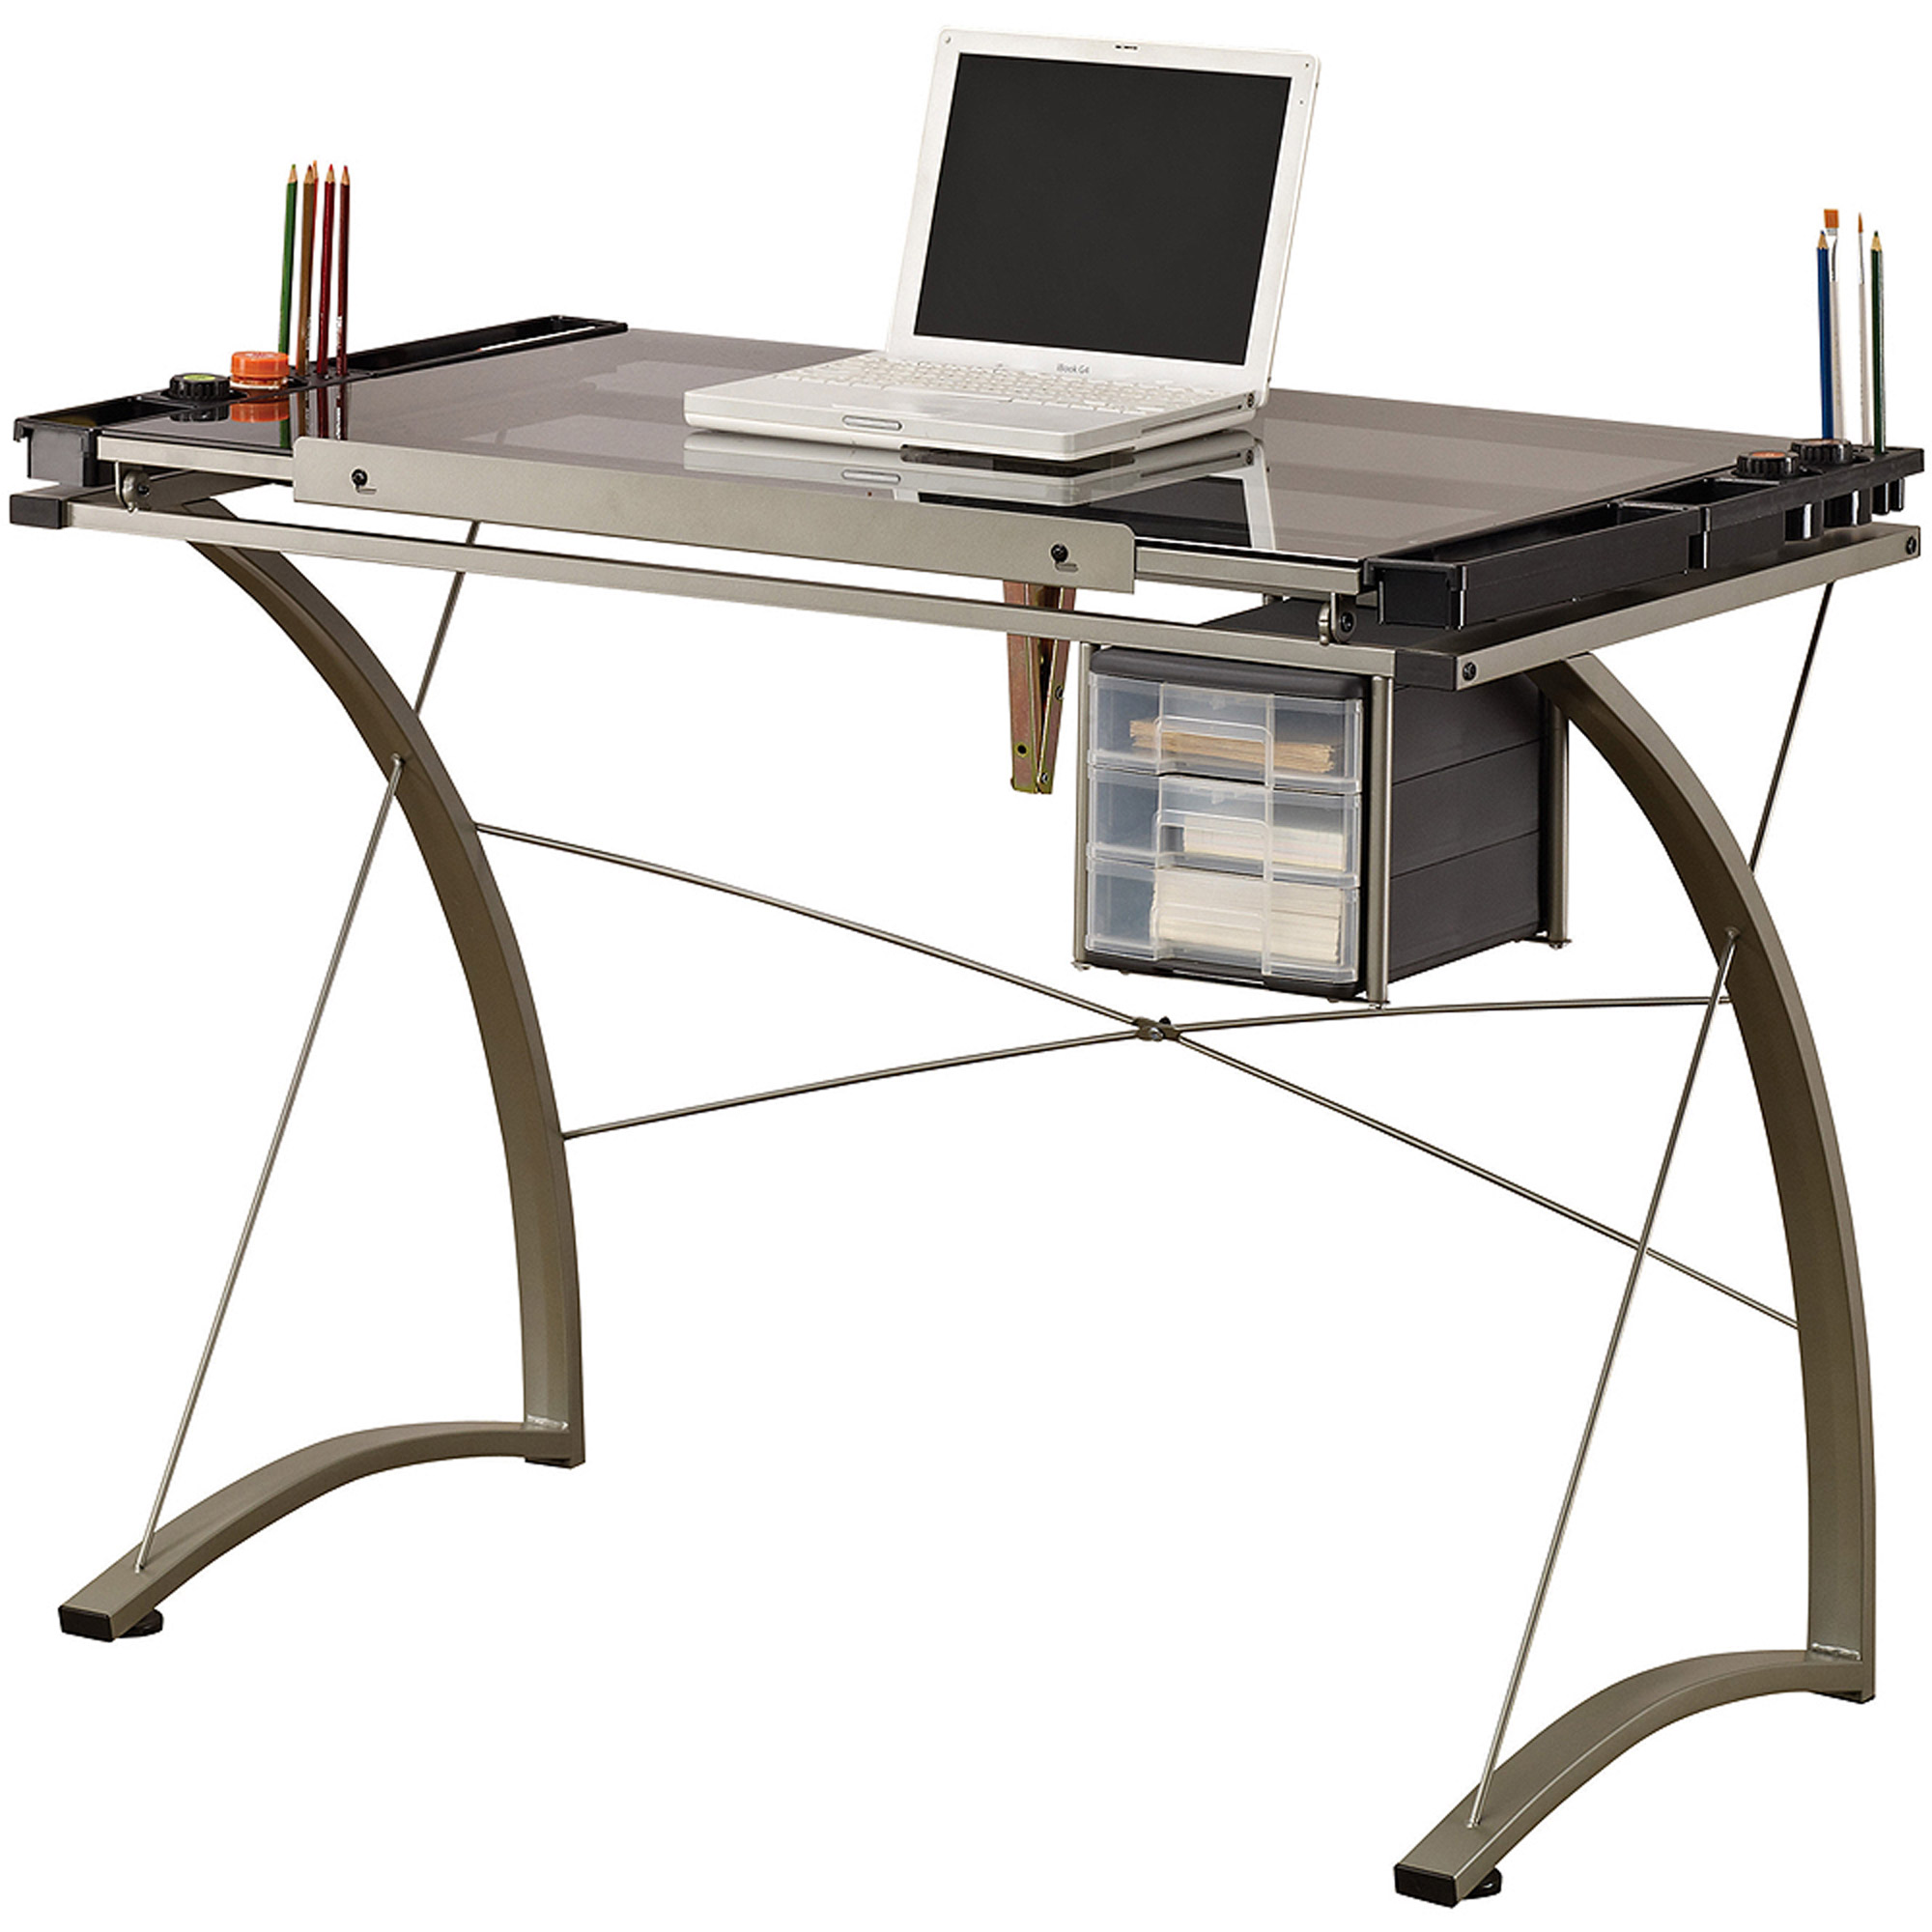 for us contact products a drafting systems free photo screen touch quote table am feb digital